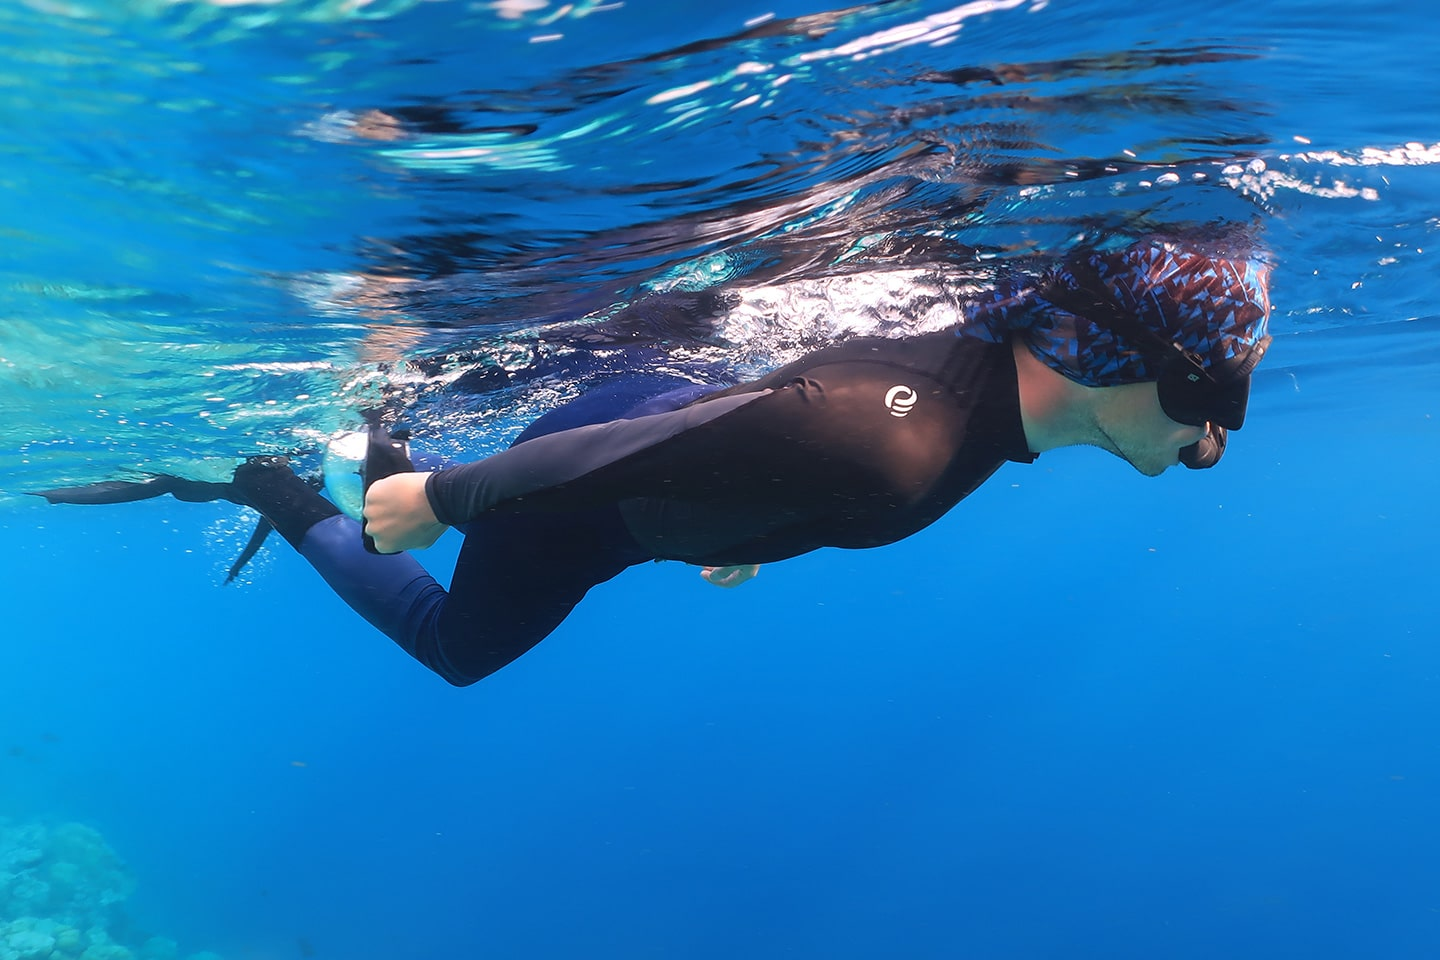 man wearing full body uv protection rash guard while snorkeling